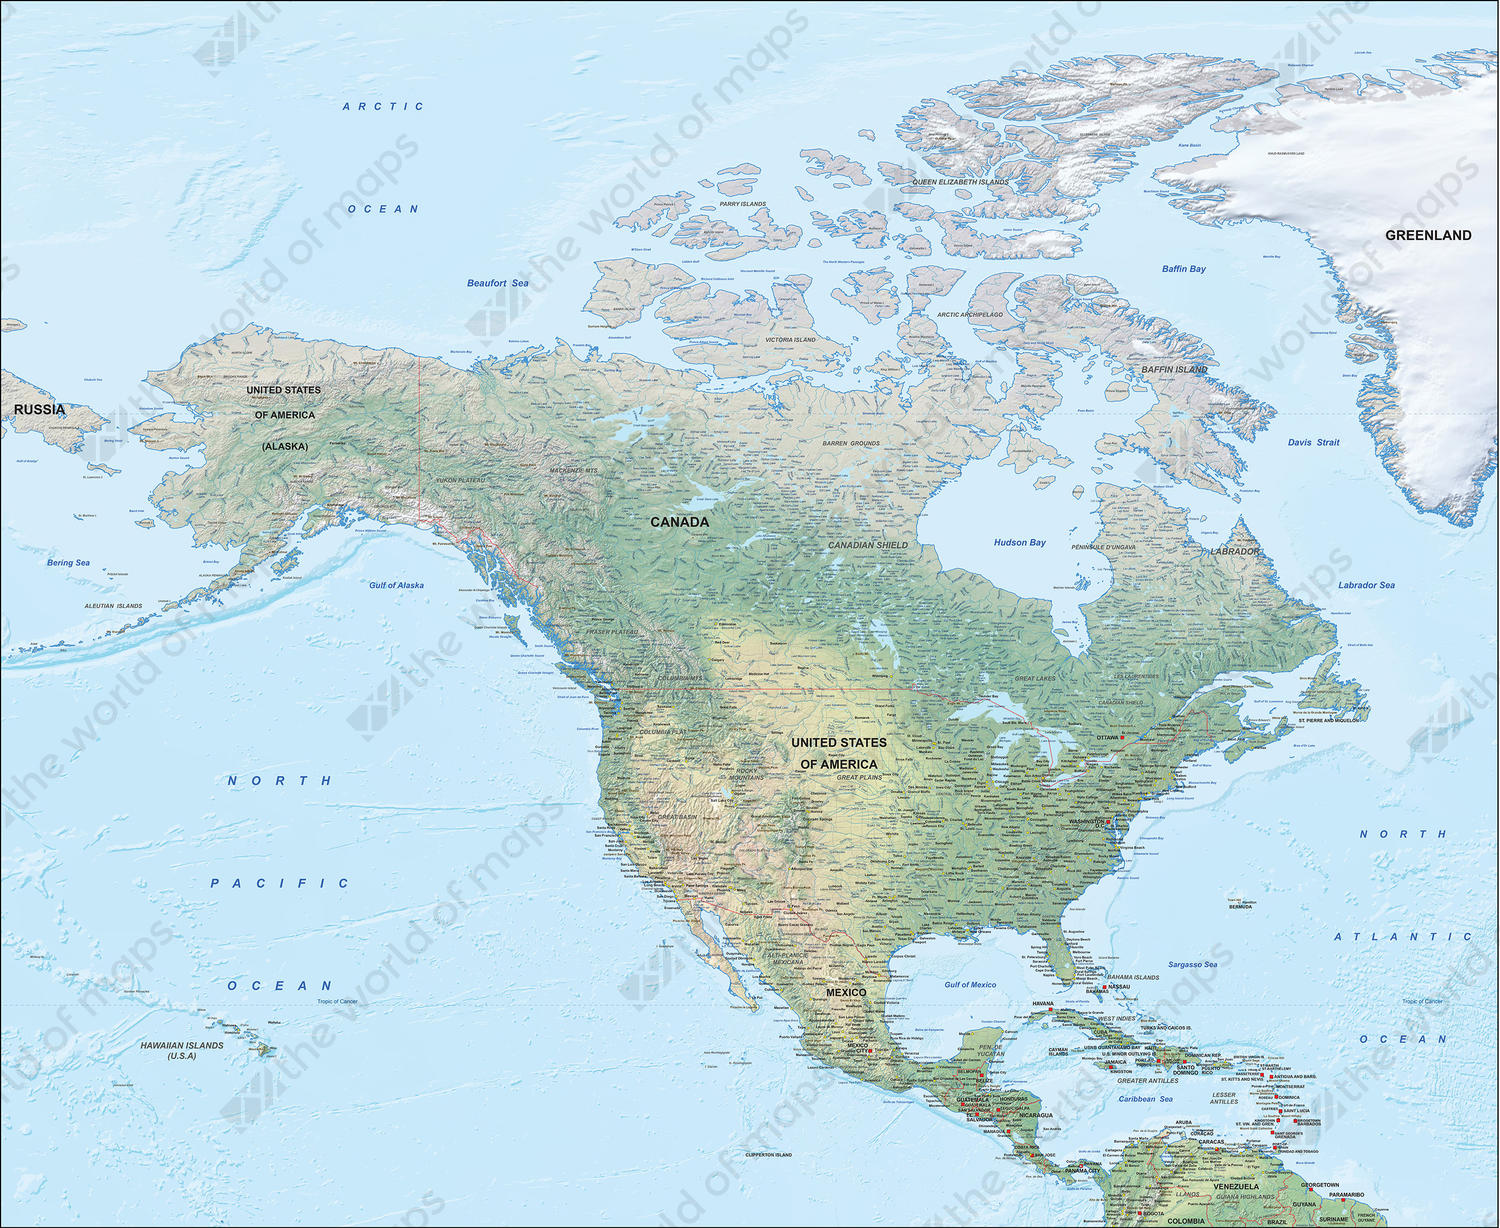 Digital Physical Map of North America 1285 The World of Mapscom